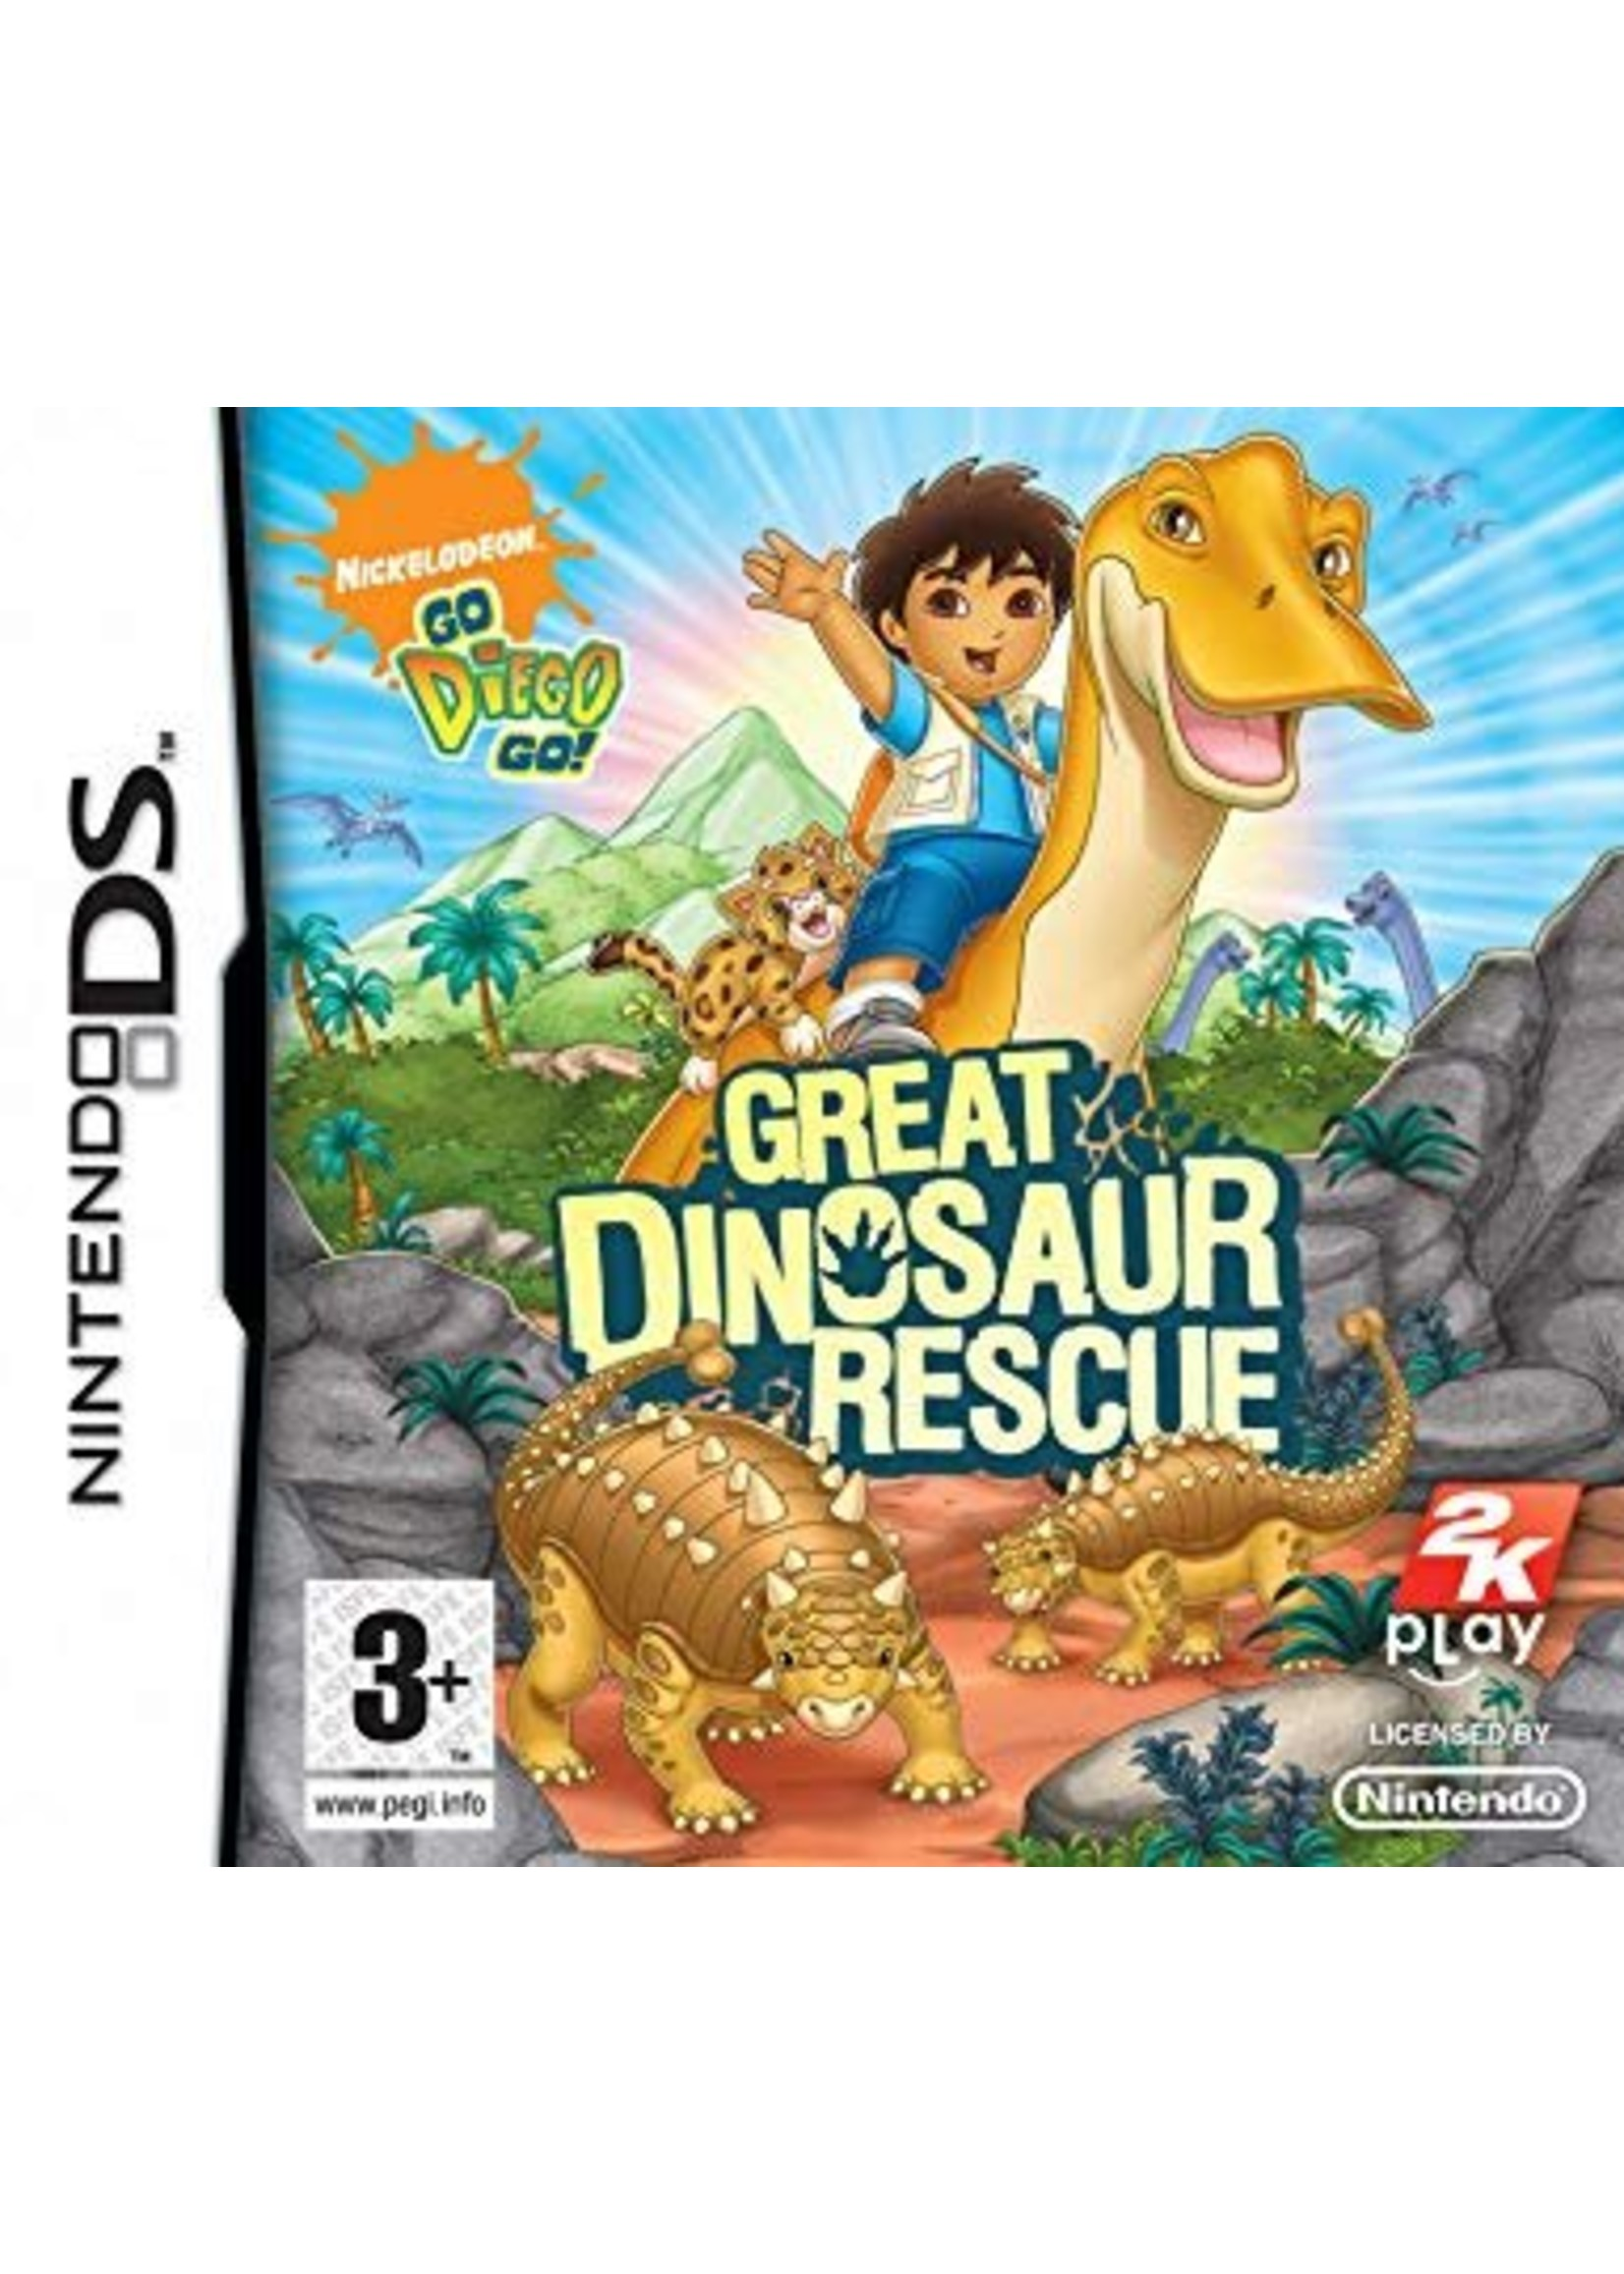 Diego Great Dinosaur Rescue - NDS PrePlayed